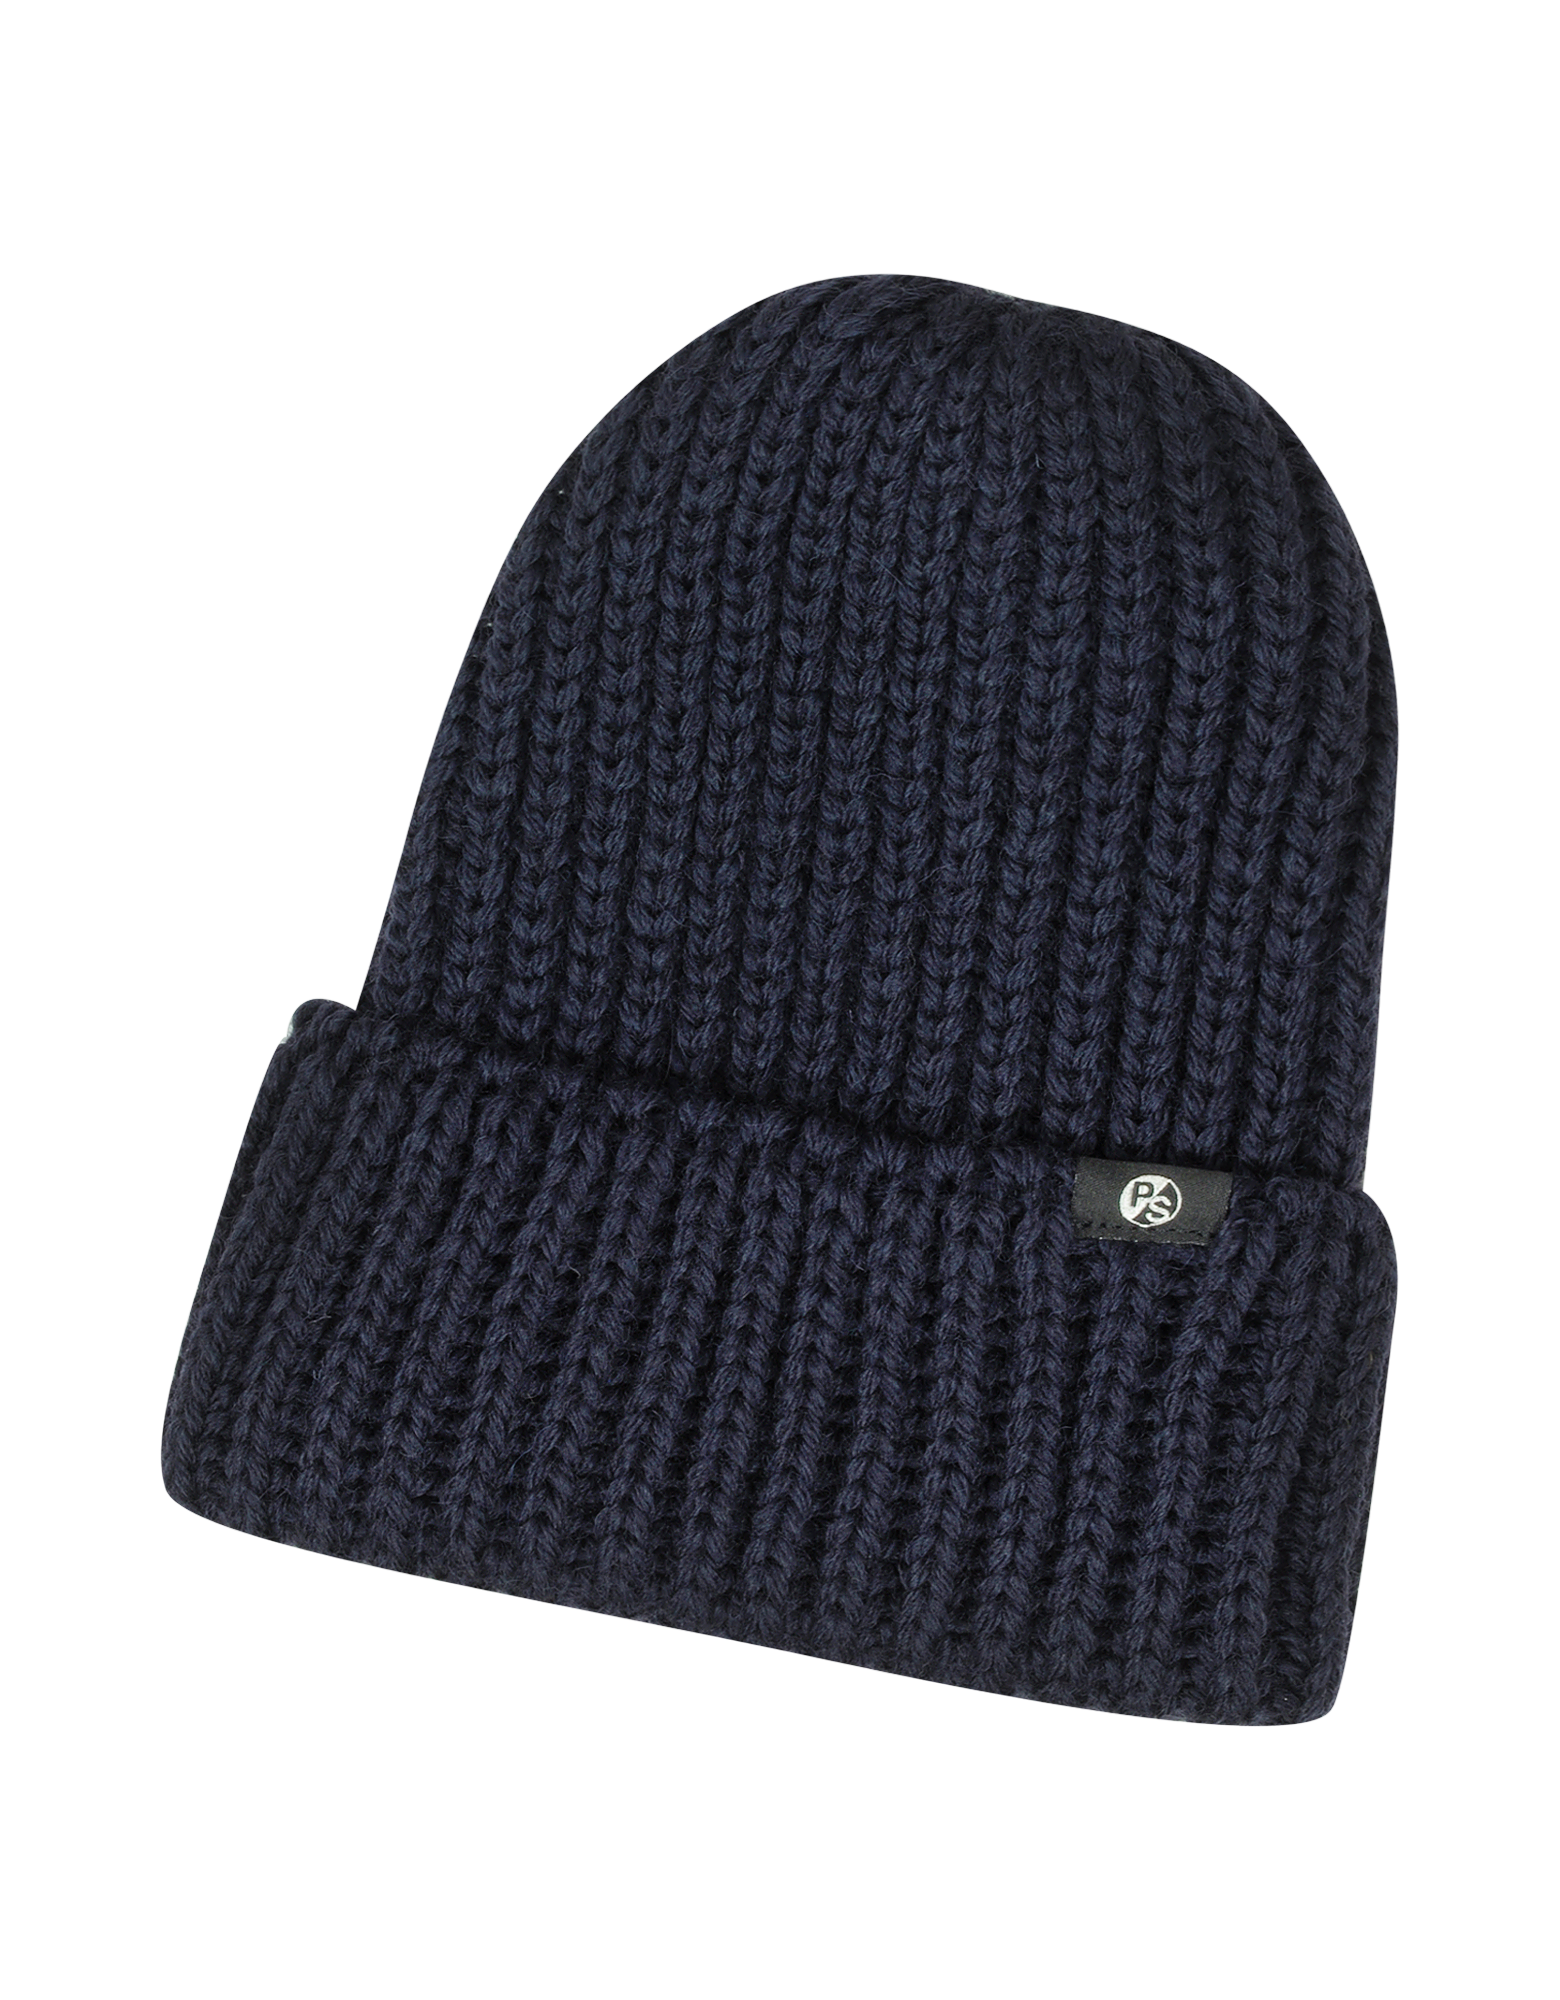 Paul Smith British Wool Men s Beanie Hat  45.00  75.00 Actual ... 9ce7bcd7121